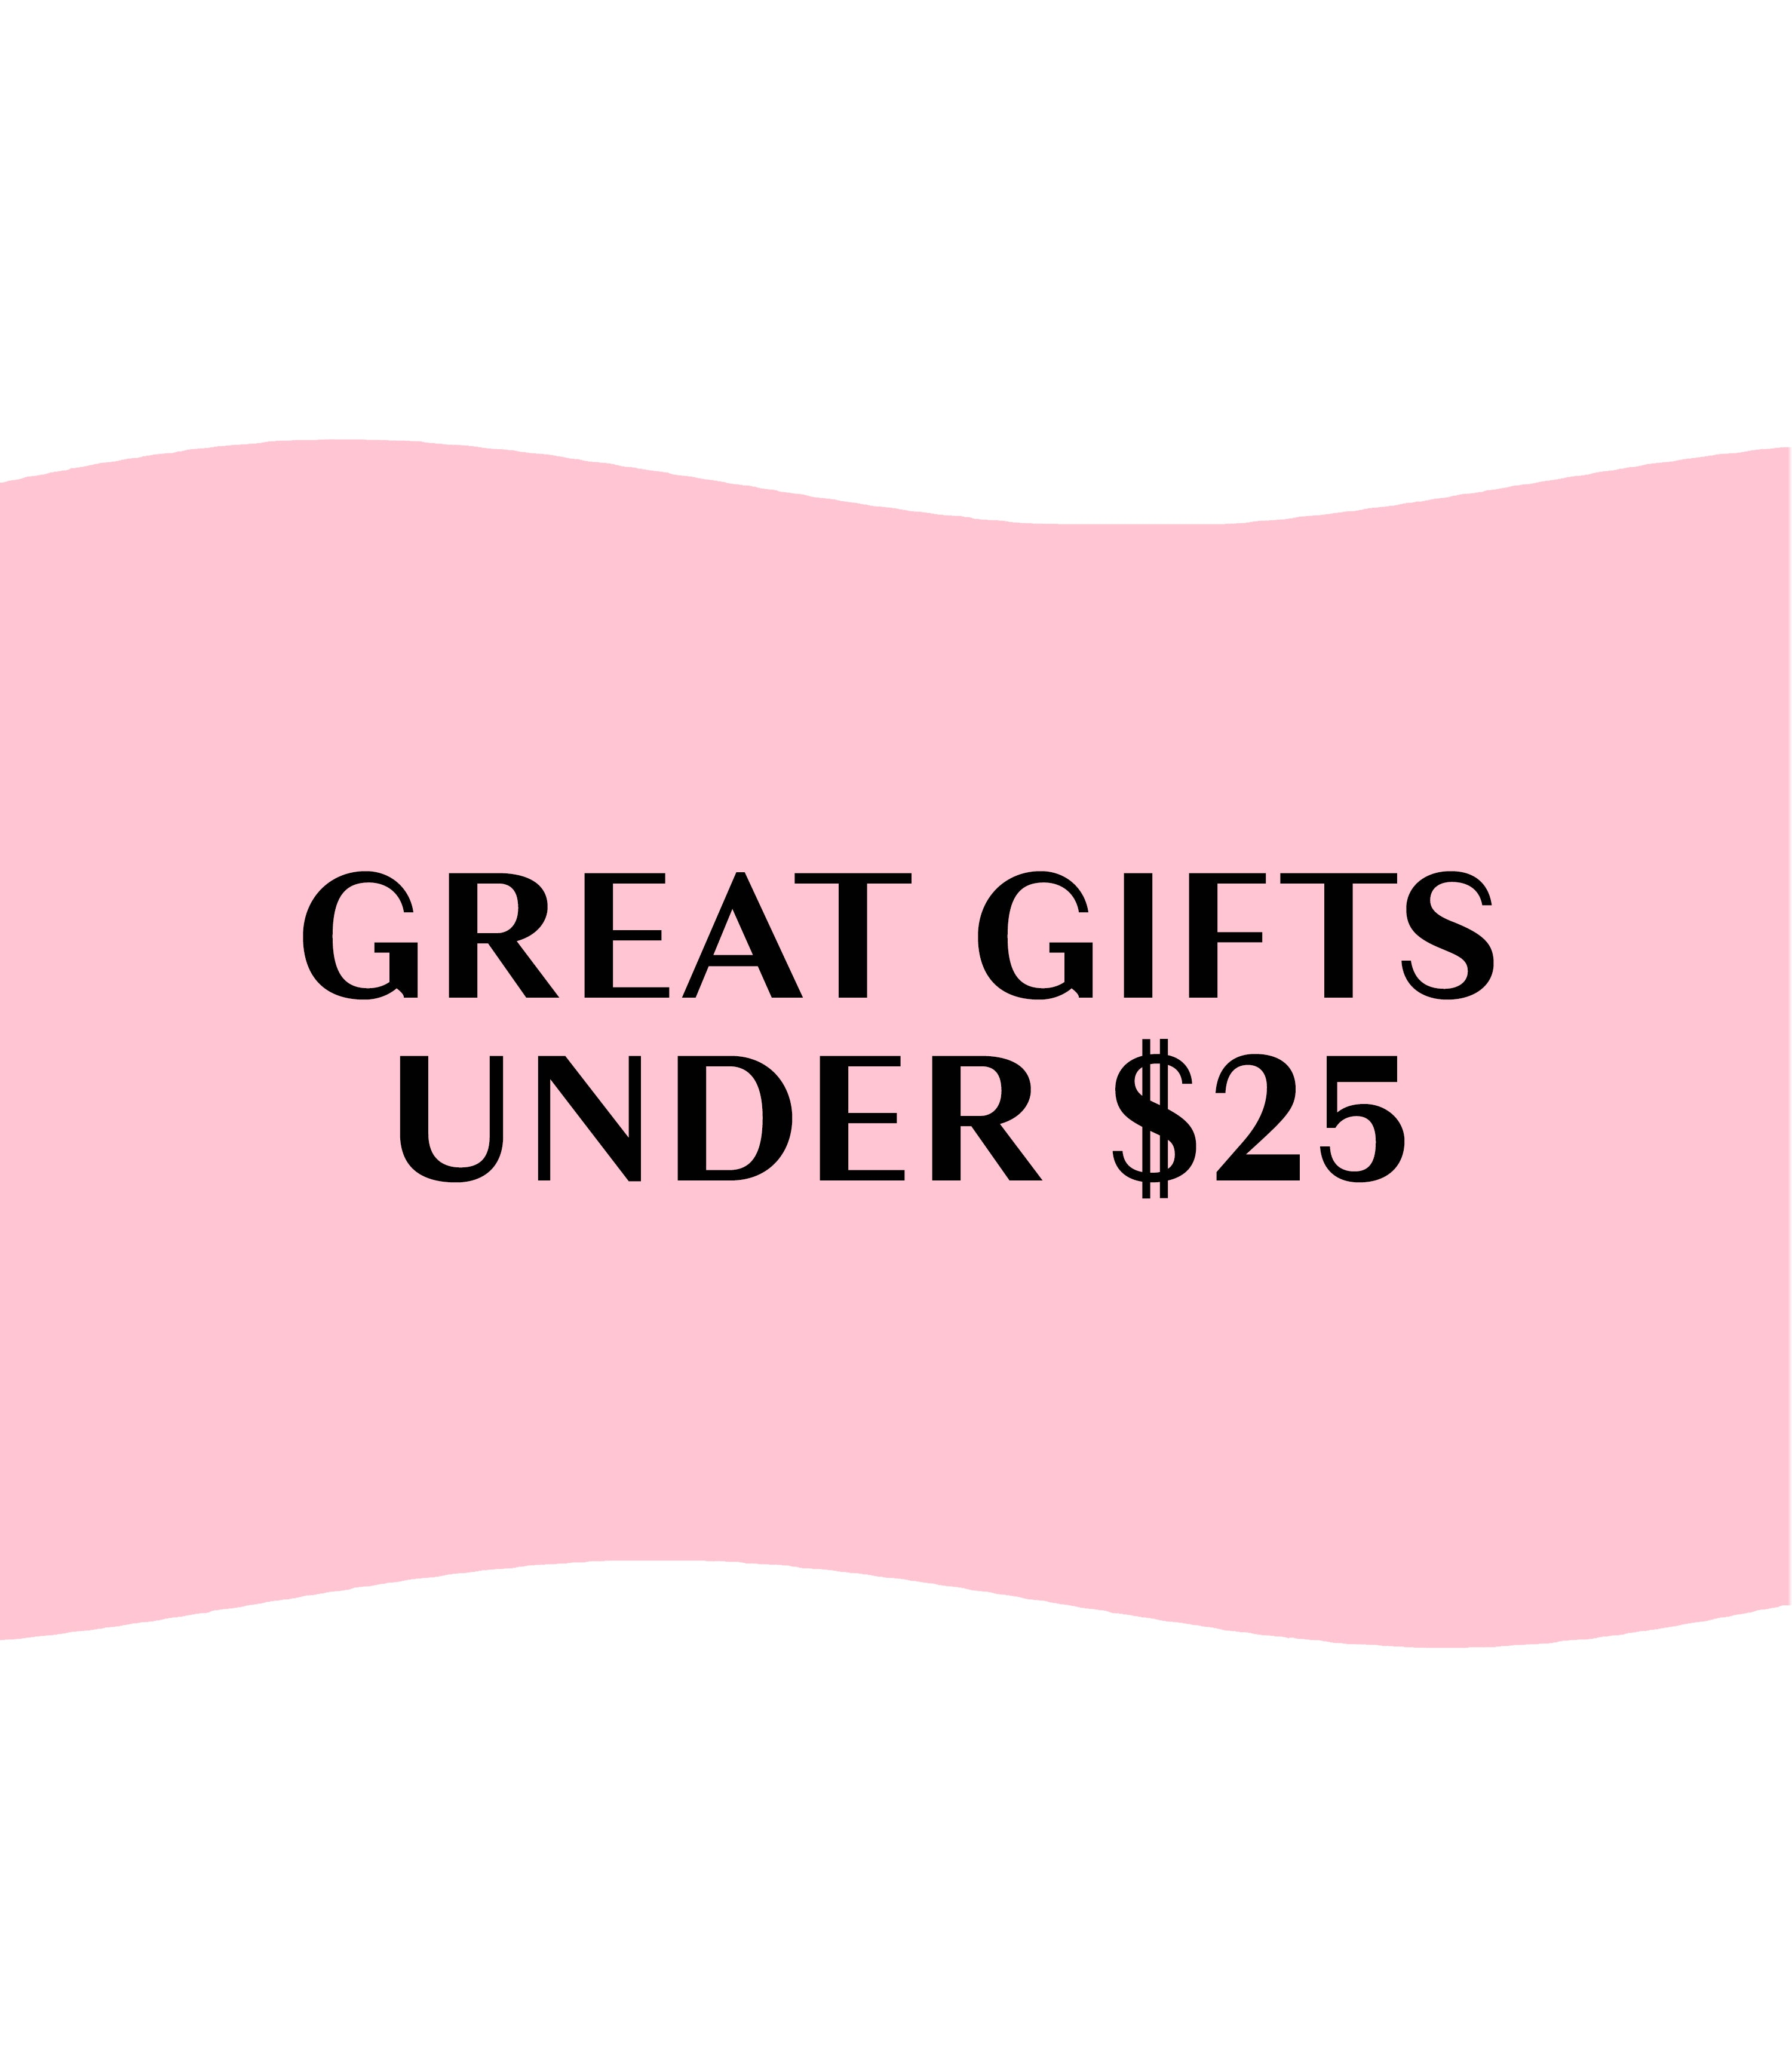 Holiday Gift Guide 2020 - Gifts Under $20 - Holiday Gift Guide 2020 - Gifts Under $20